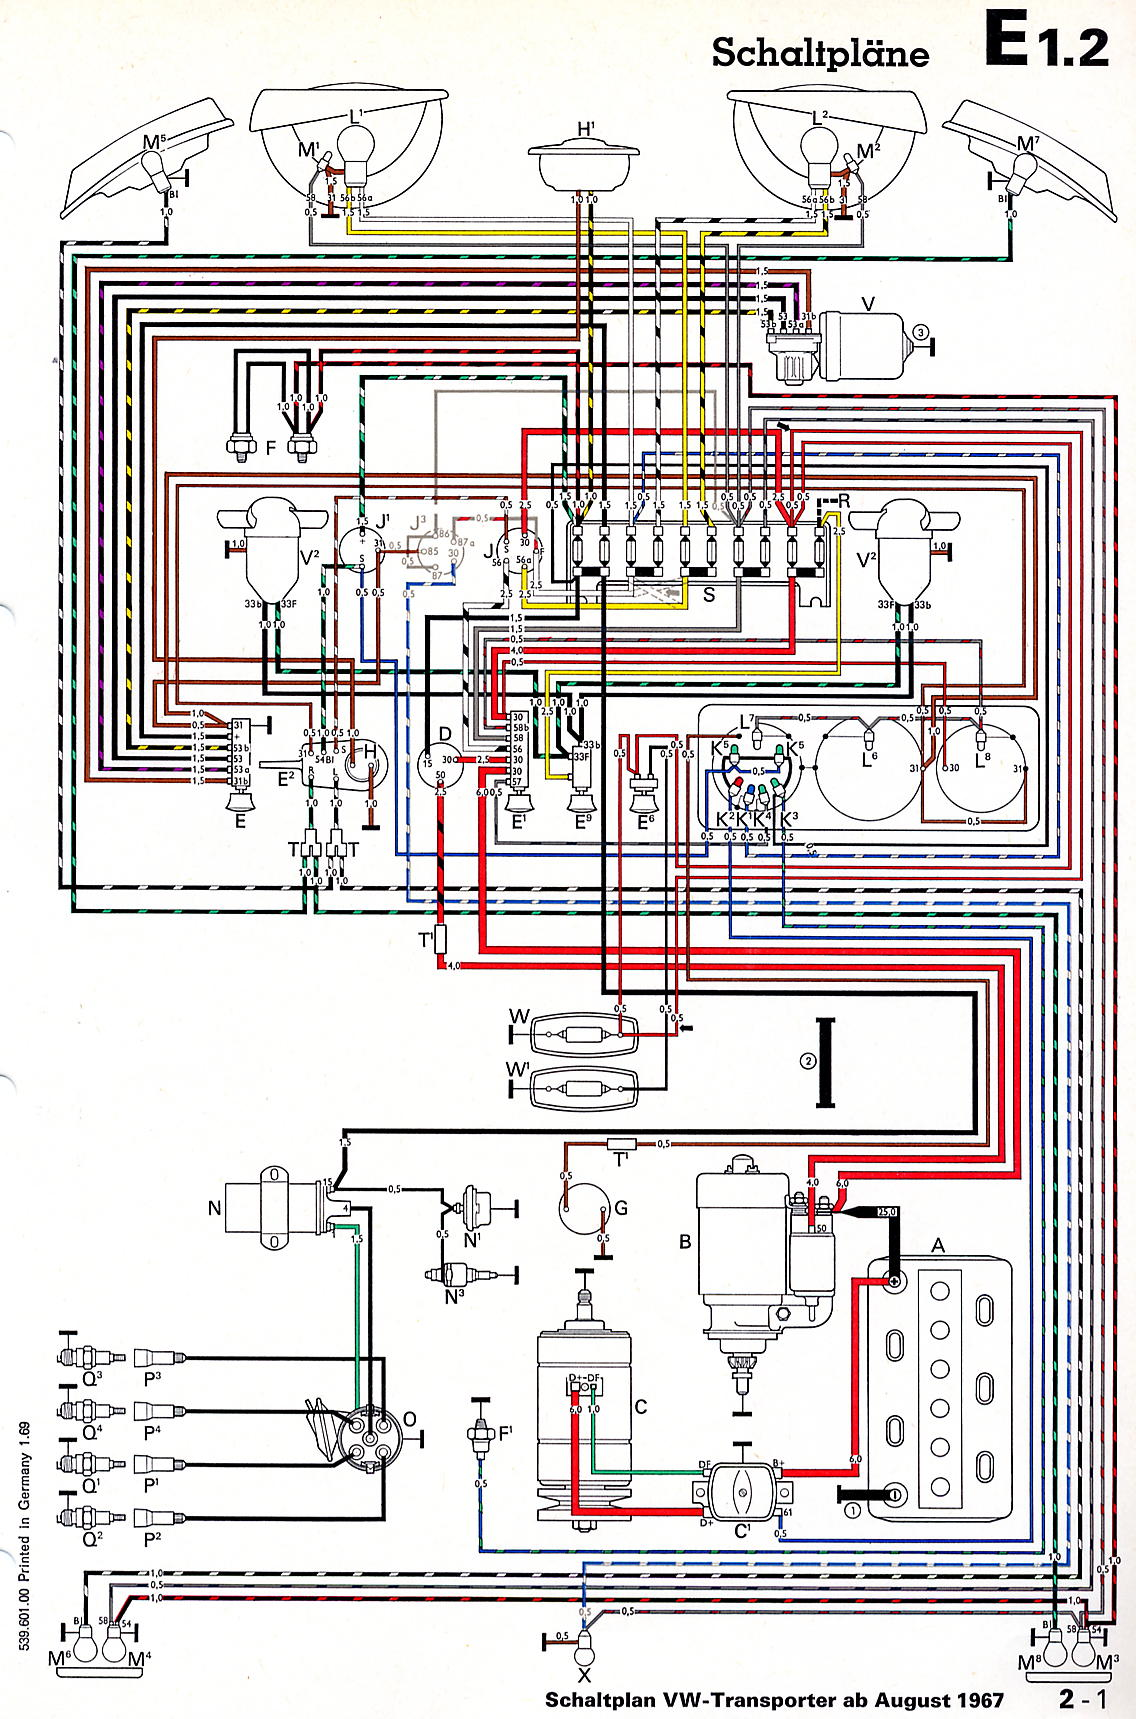 Wiring Diagrams For Headlights On 1990 Vw Westfalia Reveolution Of Headlight Schematic Vintagebus Com Bus And Other Rh